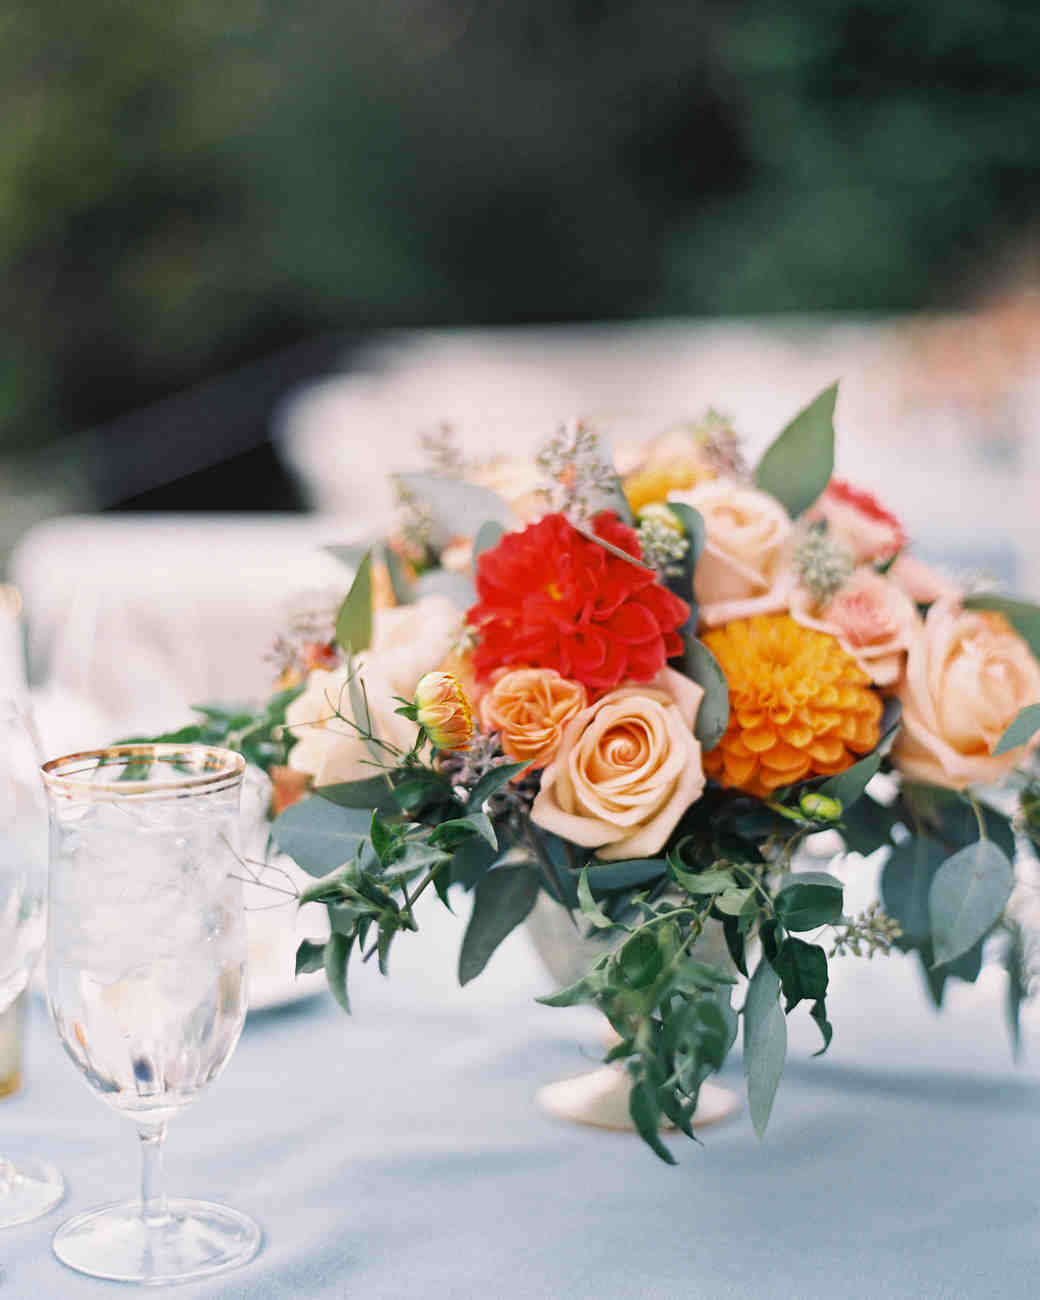 Garden wedding centerpiece with roses and dahlias